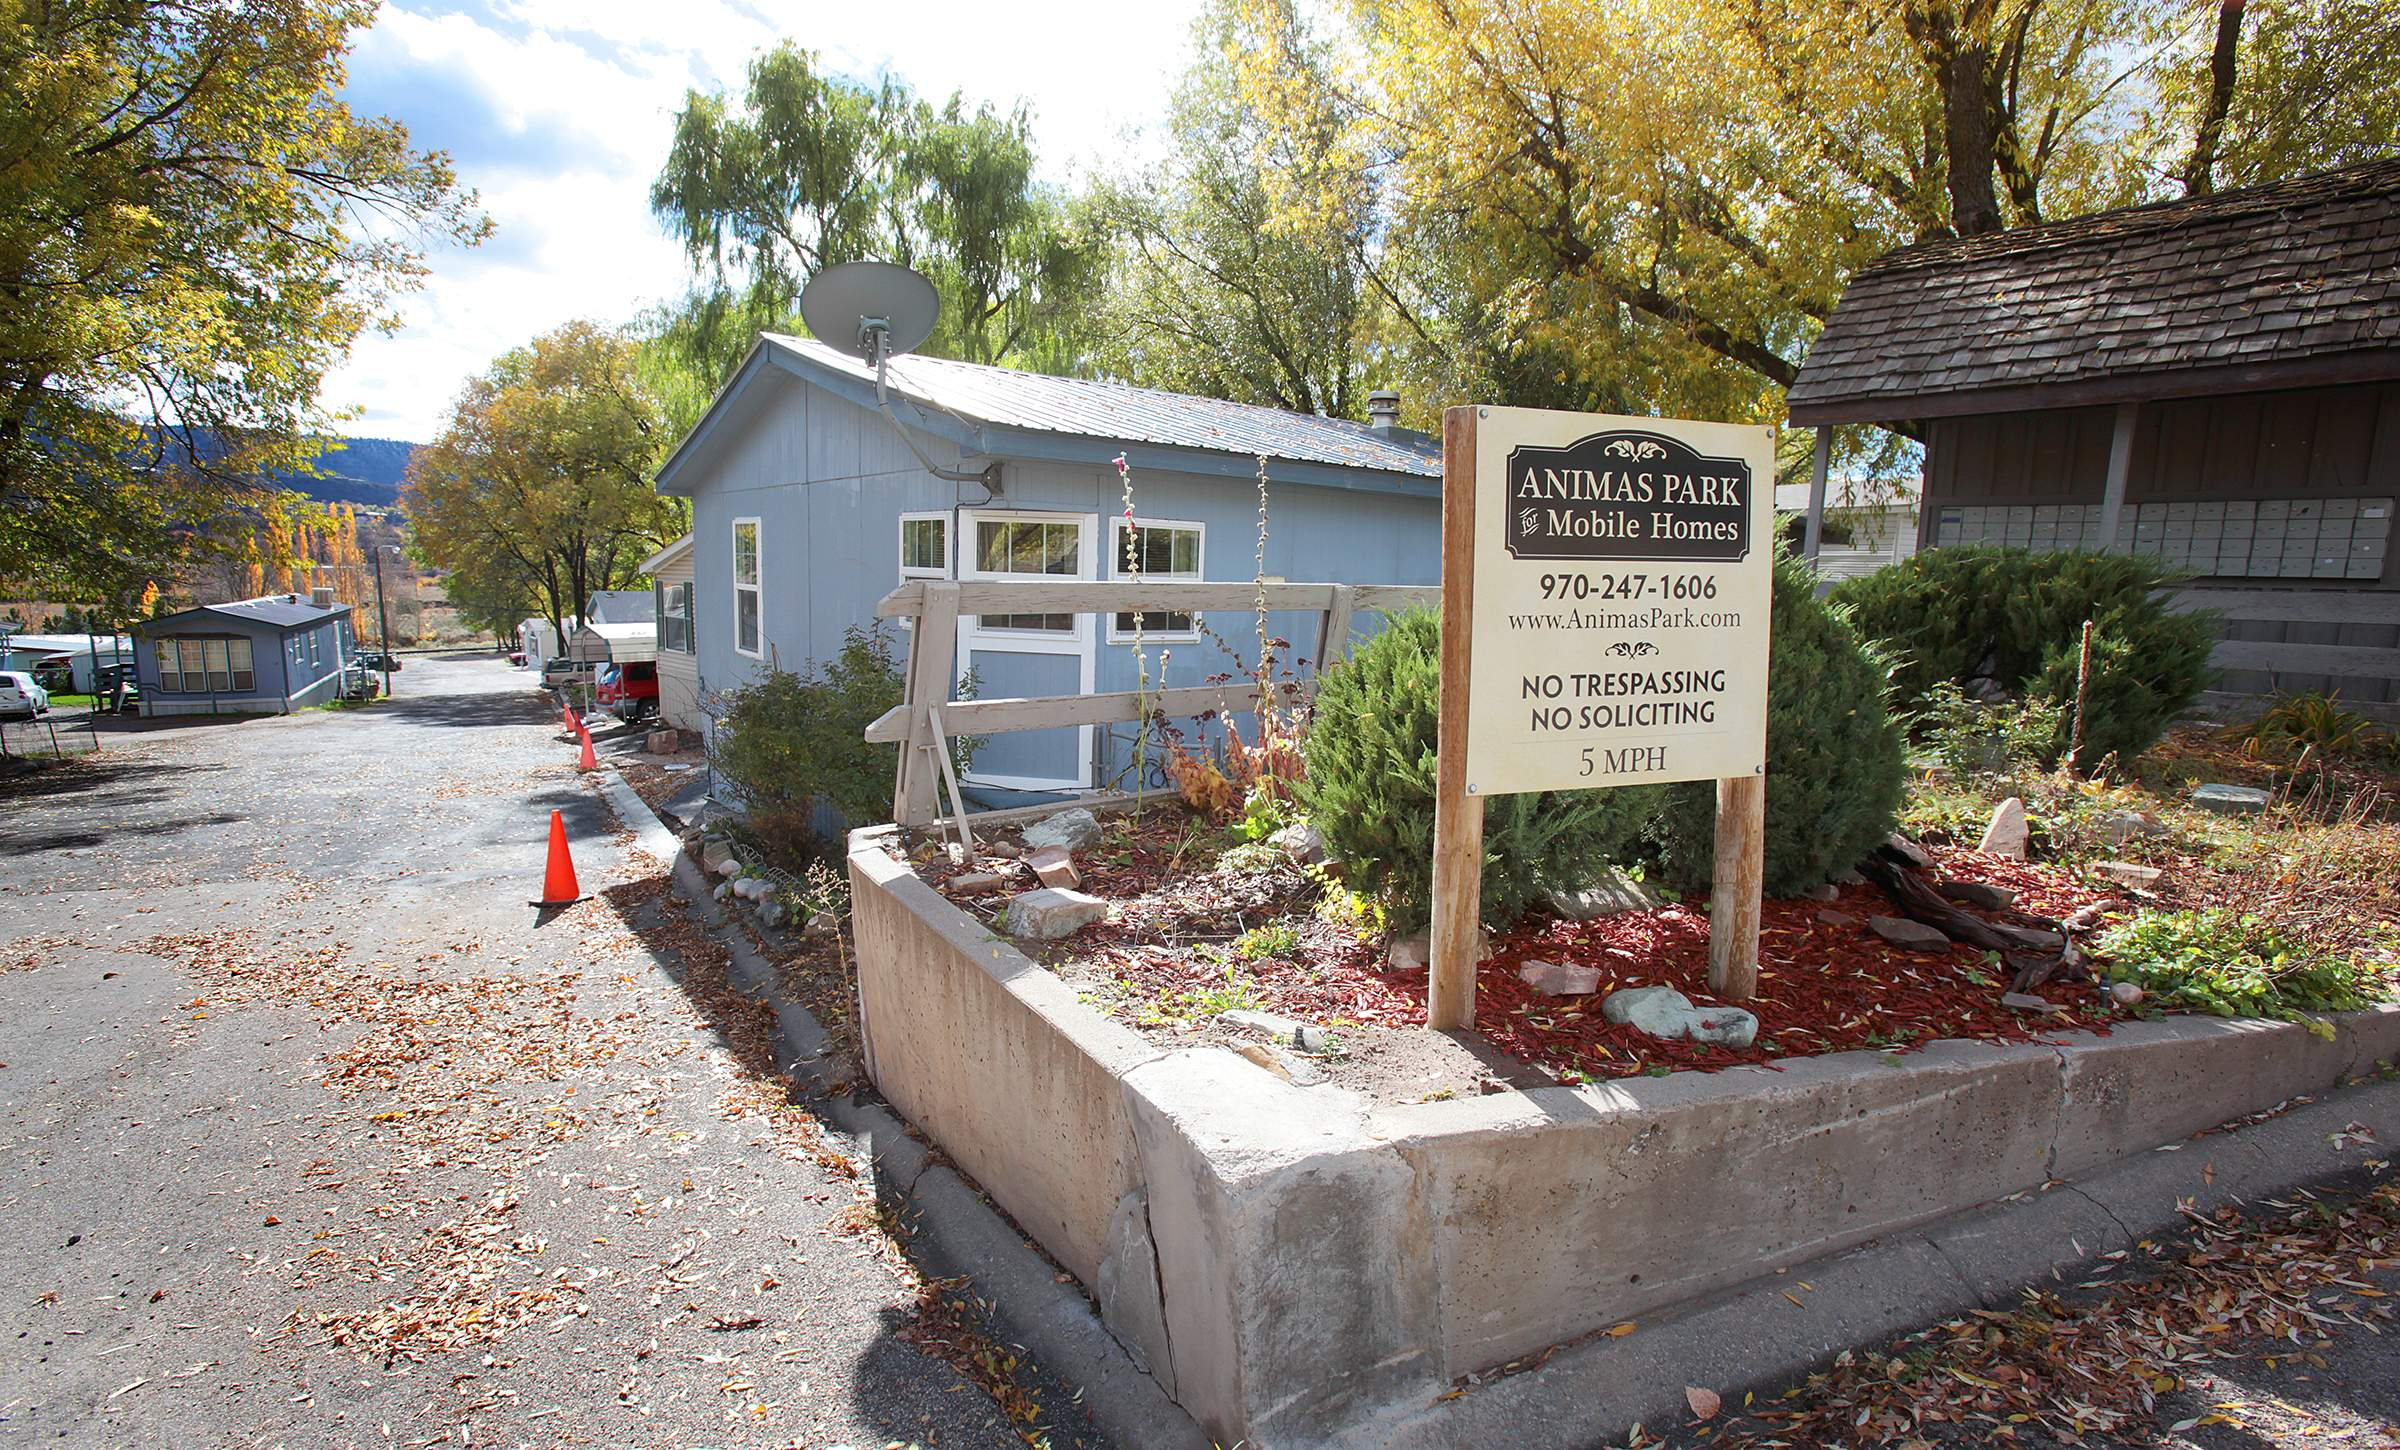 Smashing Animas Mobile Home Community On Animas View Drive Is Offering To Move Threelightner Creek Mobile Home Park Residents Into Vacancies At Its Offer Comes To Relocate Lightner Mobile Home Residen curbed Free Mobile Homes